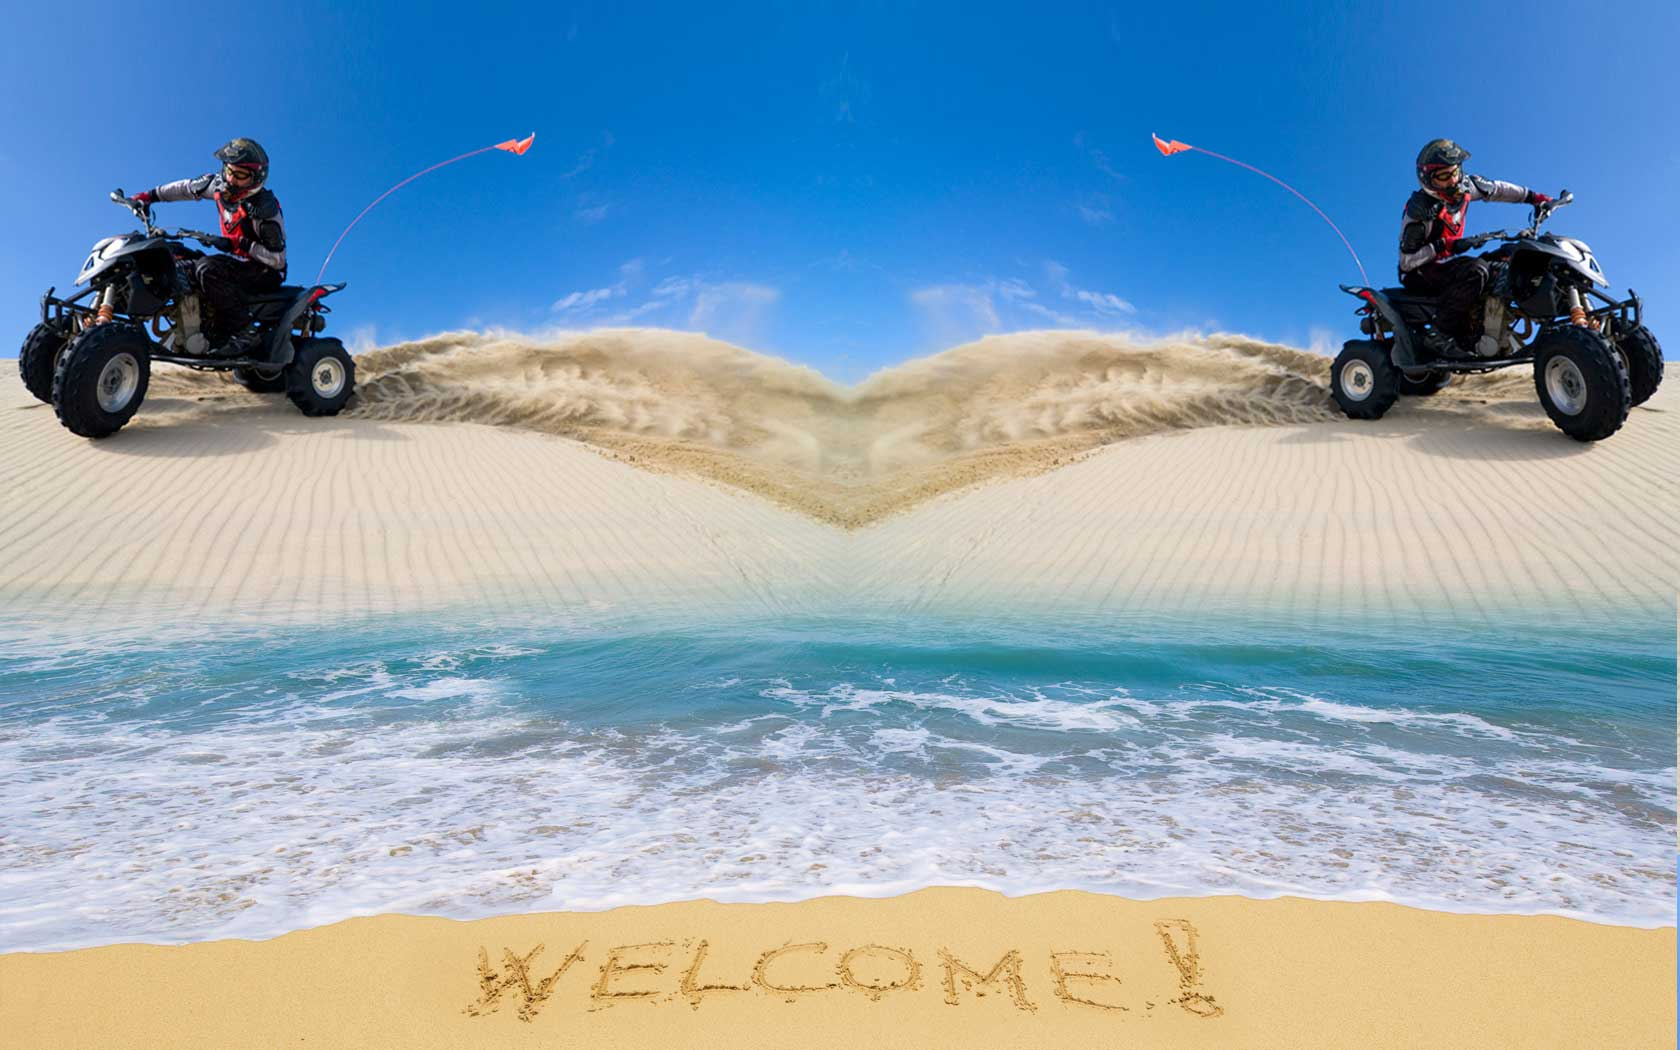 Home Page Welcome Collage Background Jpg